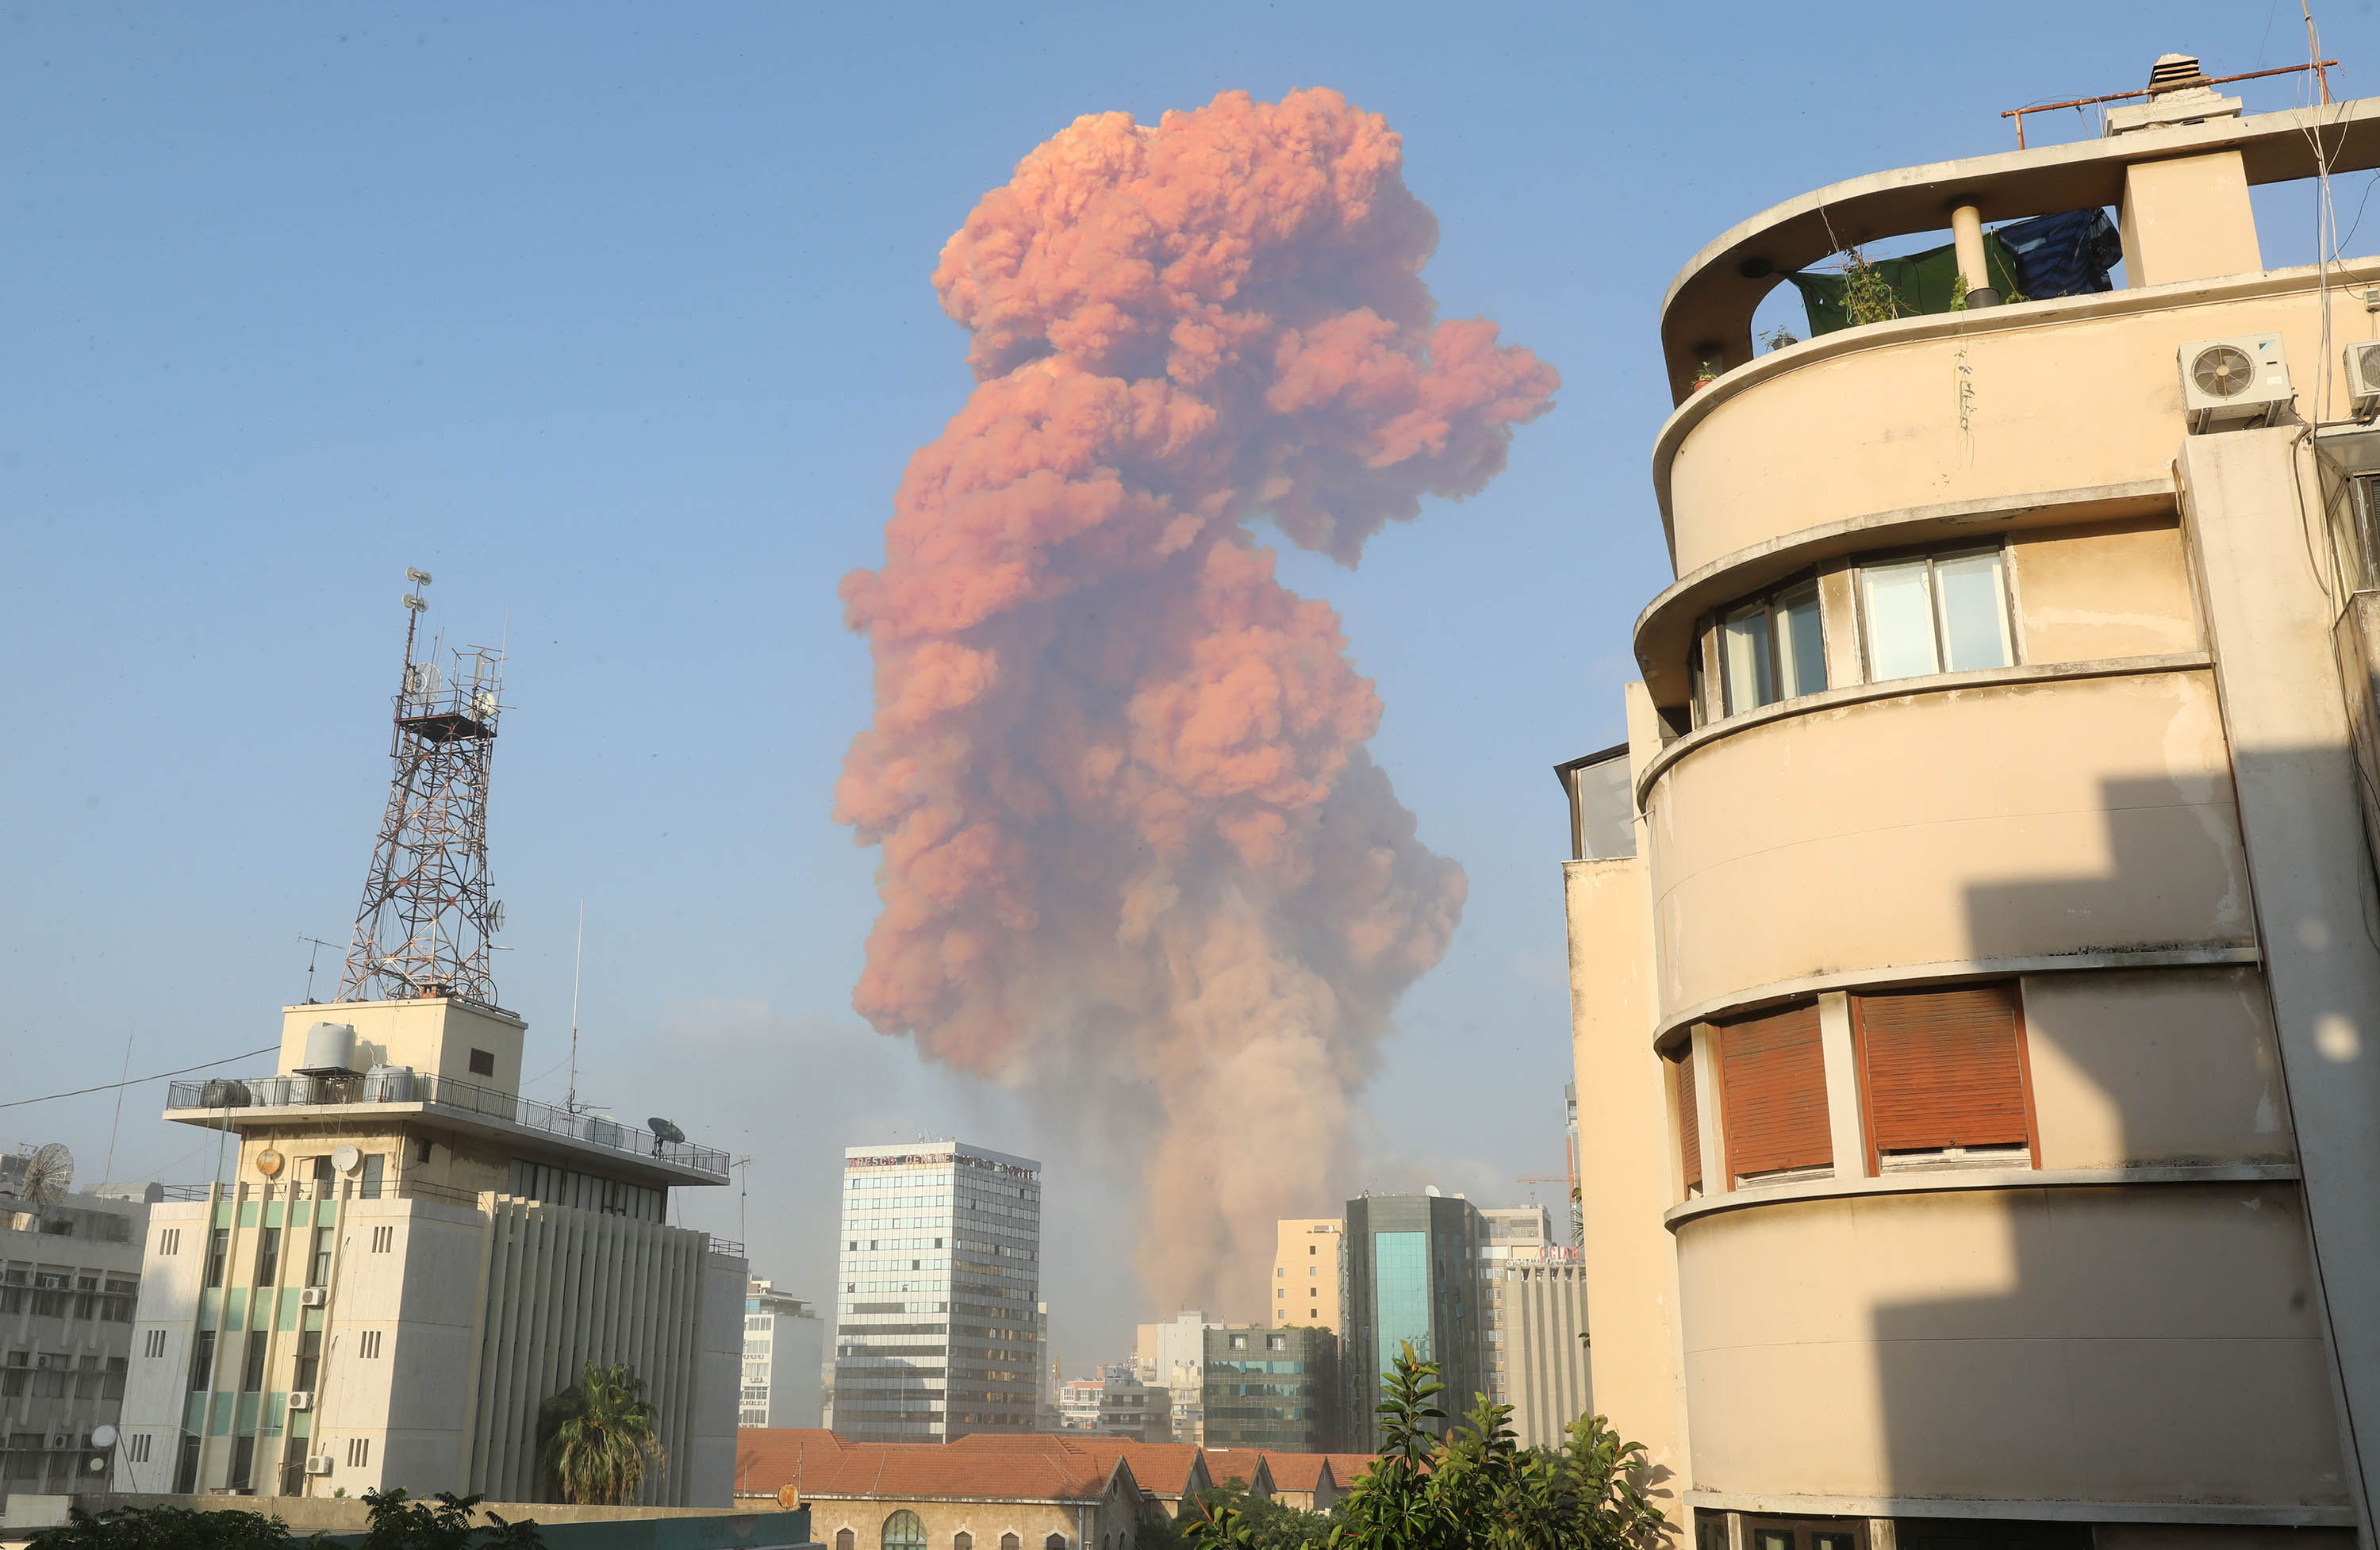 An explosion is seen in Beirut, Lebanon, on August 4.